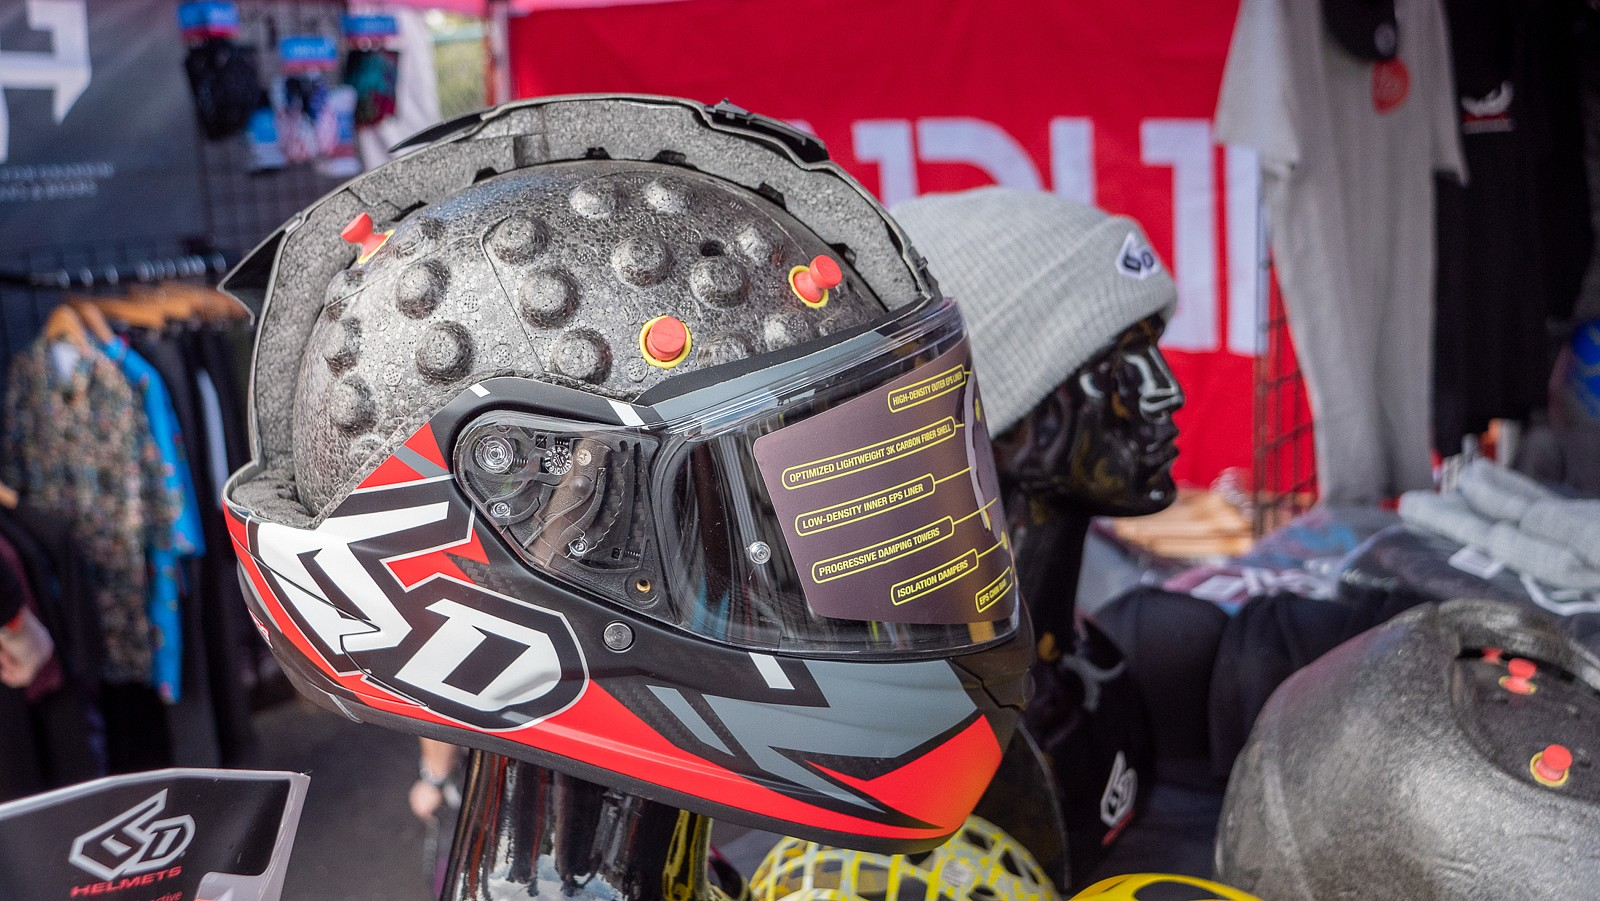 6D Helmet Technology - PIT BITS 2 - Sedona Bike Festival 2020 - Mountain Biking Pictures - Vital MTB